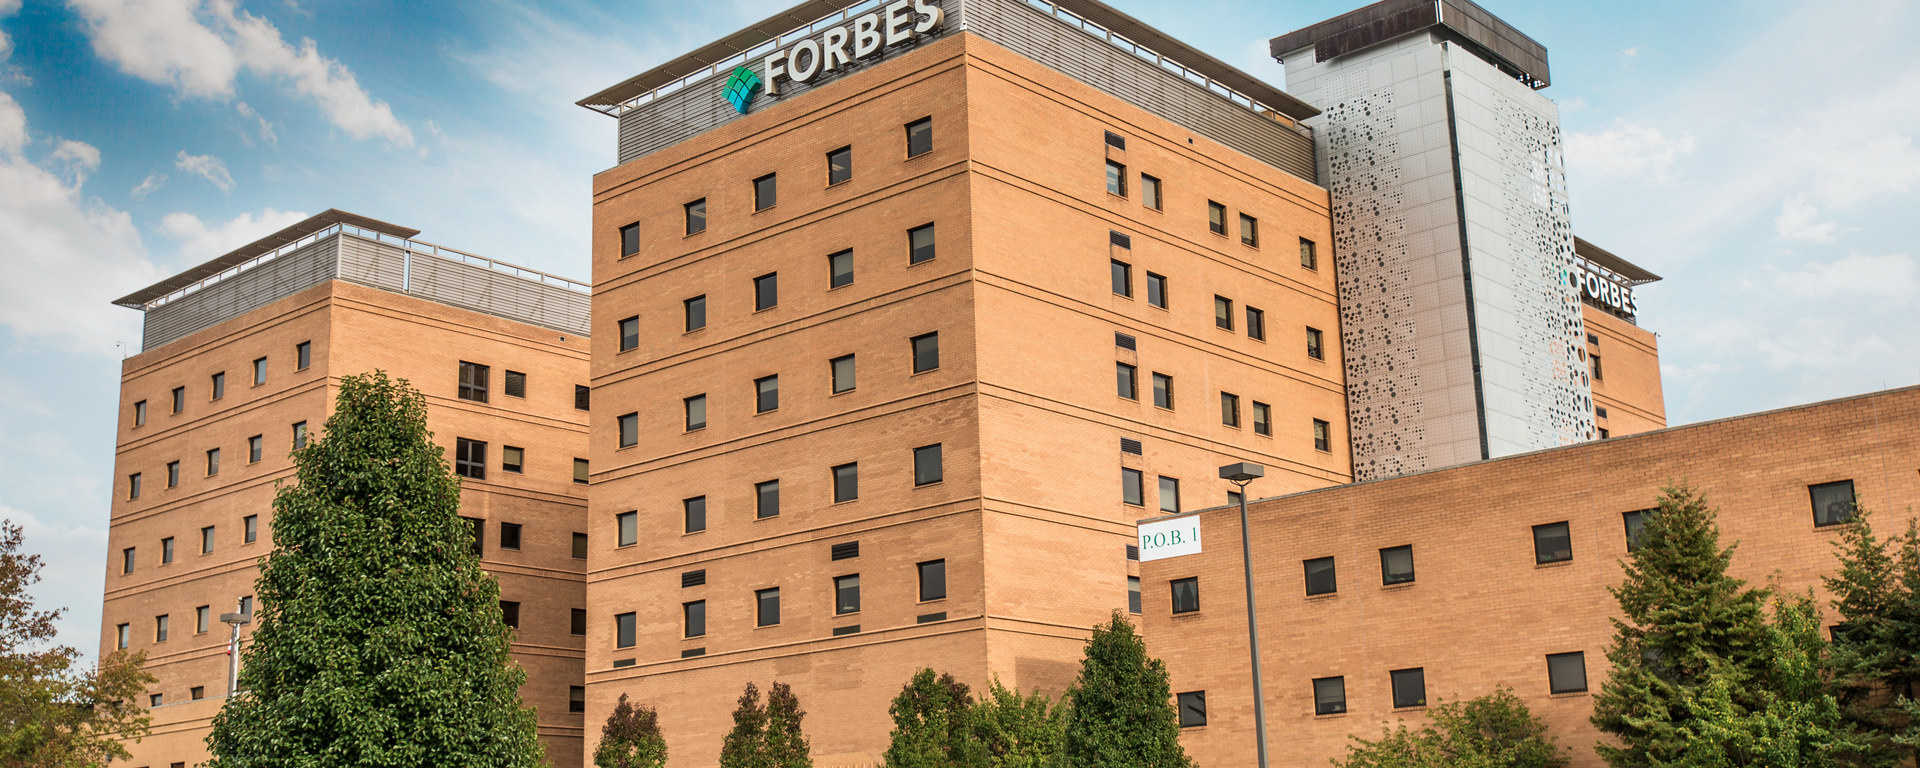 GENERAL AND BREAST SURGERY at Forbes Hospital Location